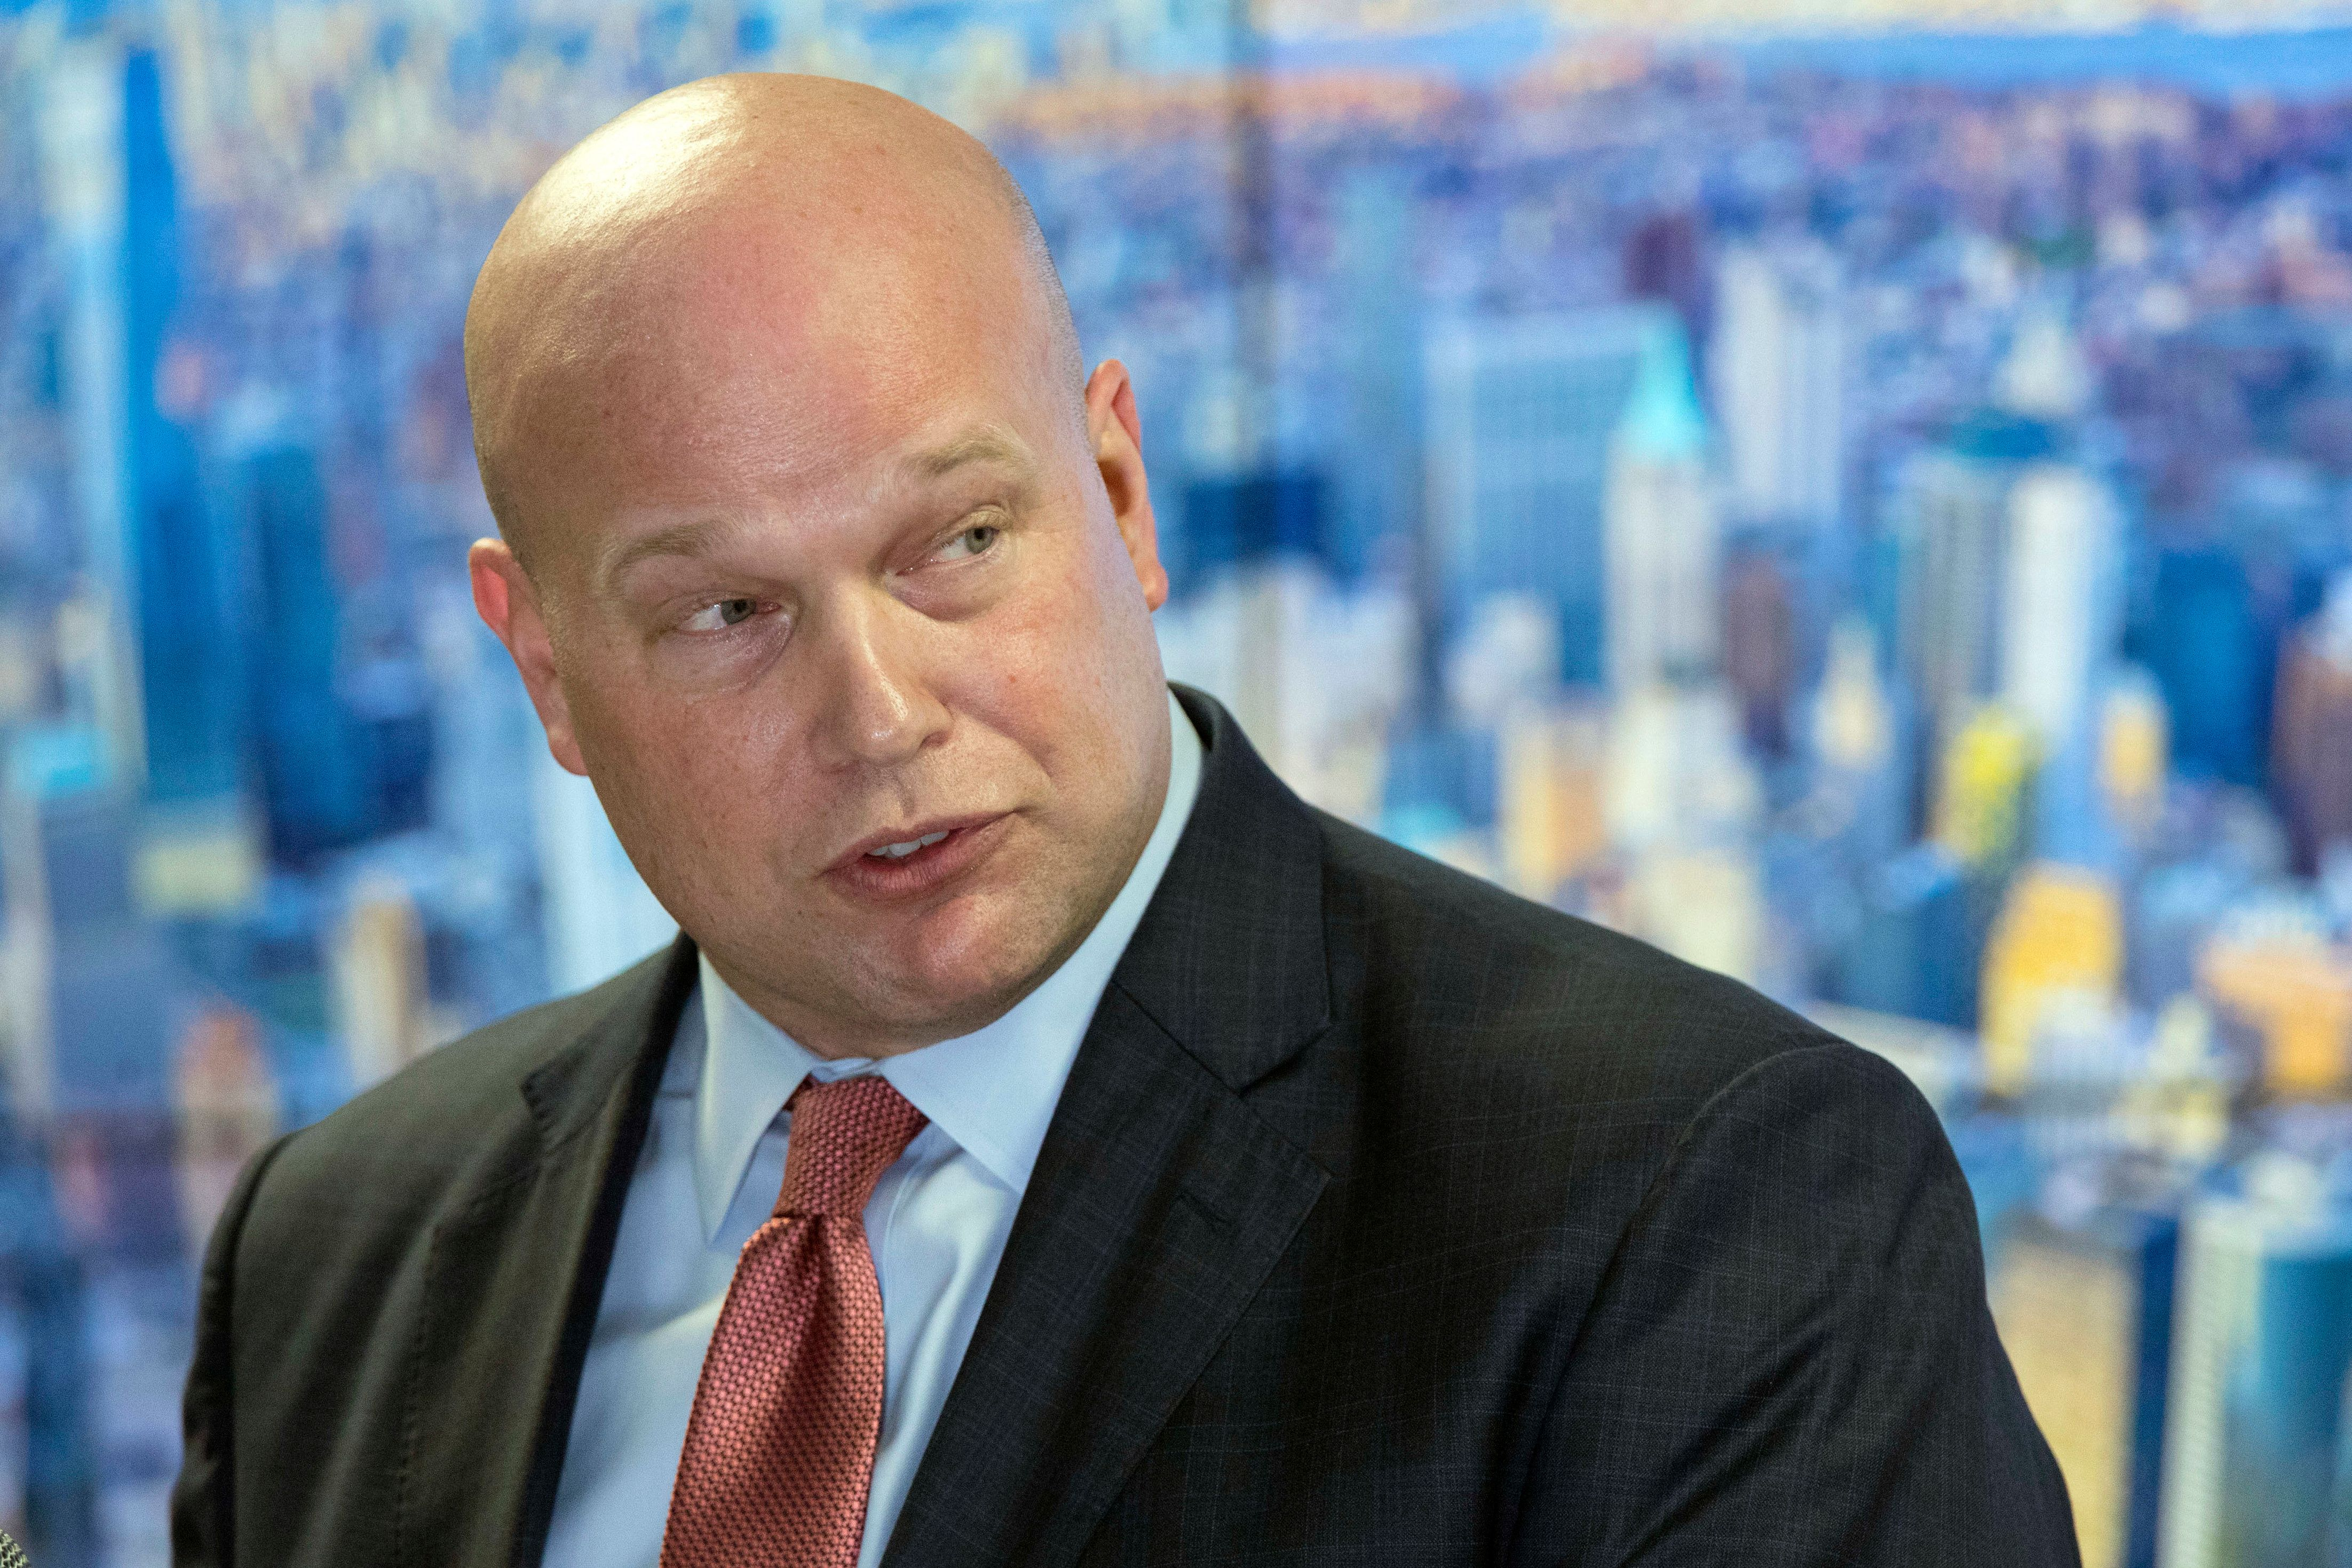 Acting Attorney General Matthew Whitaker was promoted from chief of staff to take the place of Jeff Sessions,...